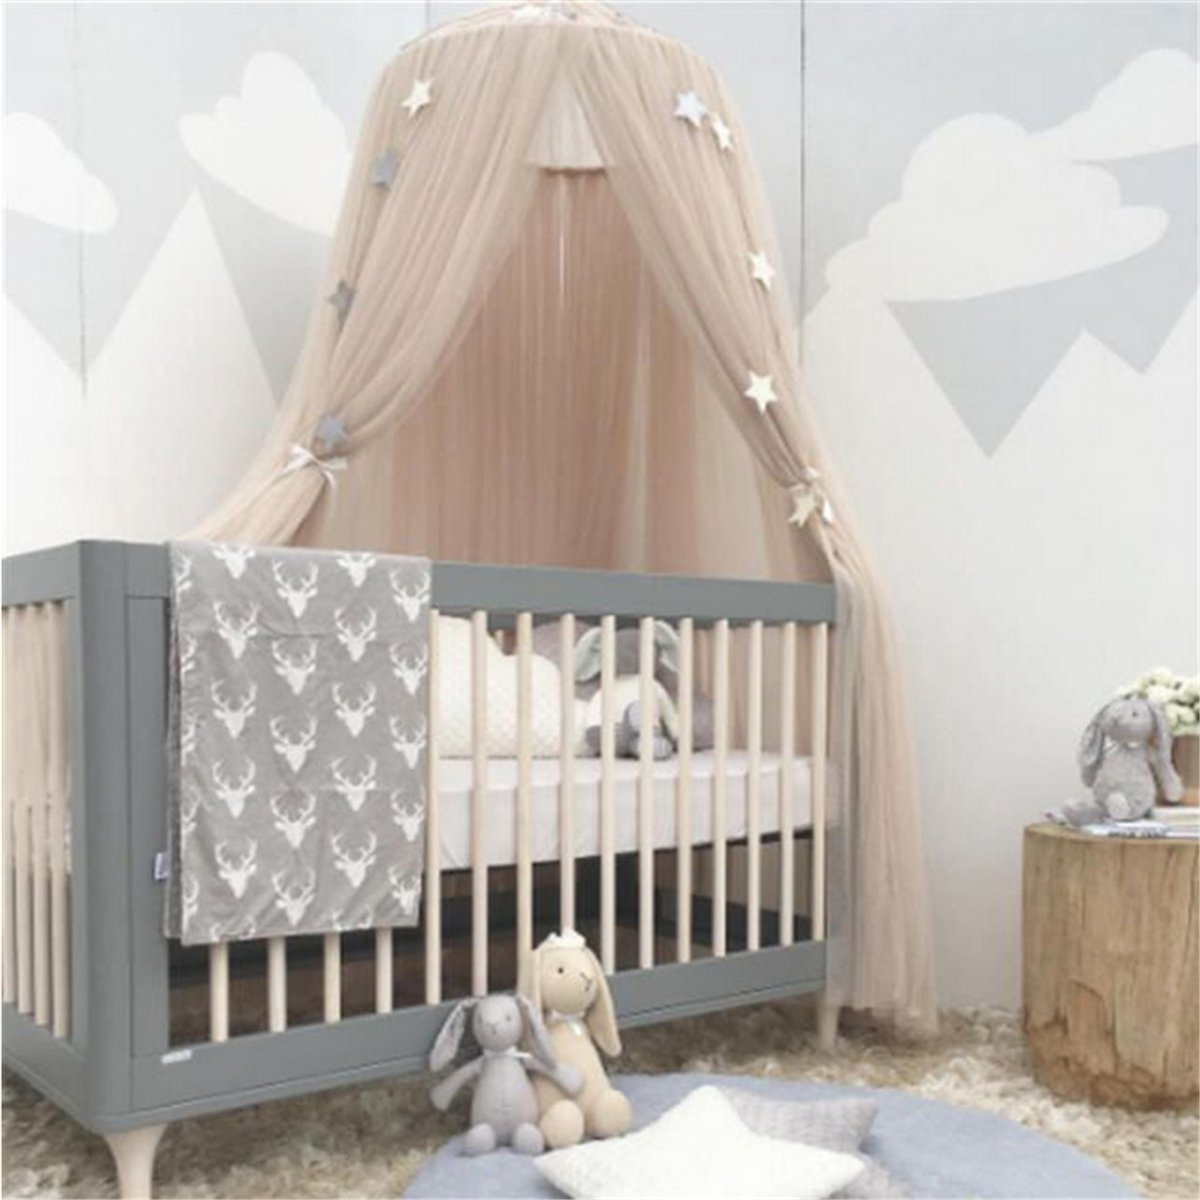 Dome Bed Canopy, Cotton Mosquito Net Canopy Princess Play Tent Bedding Gaming House for Girls Baby Indoor Outdoor Playing Reading Height 240cm (Grey) Yosoo